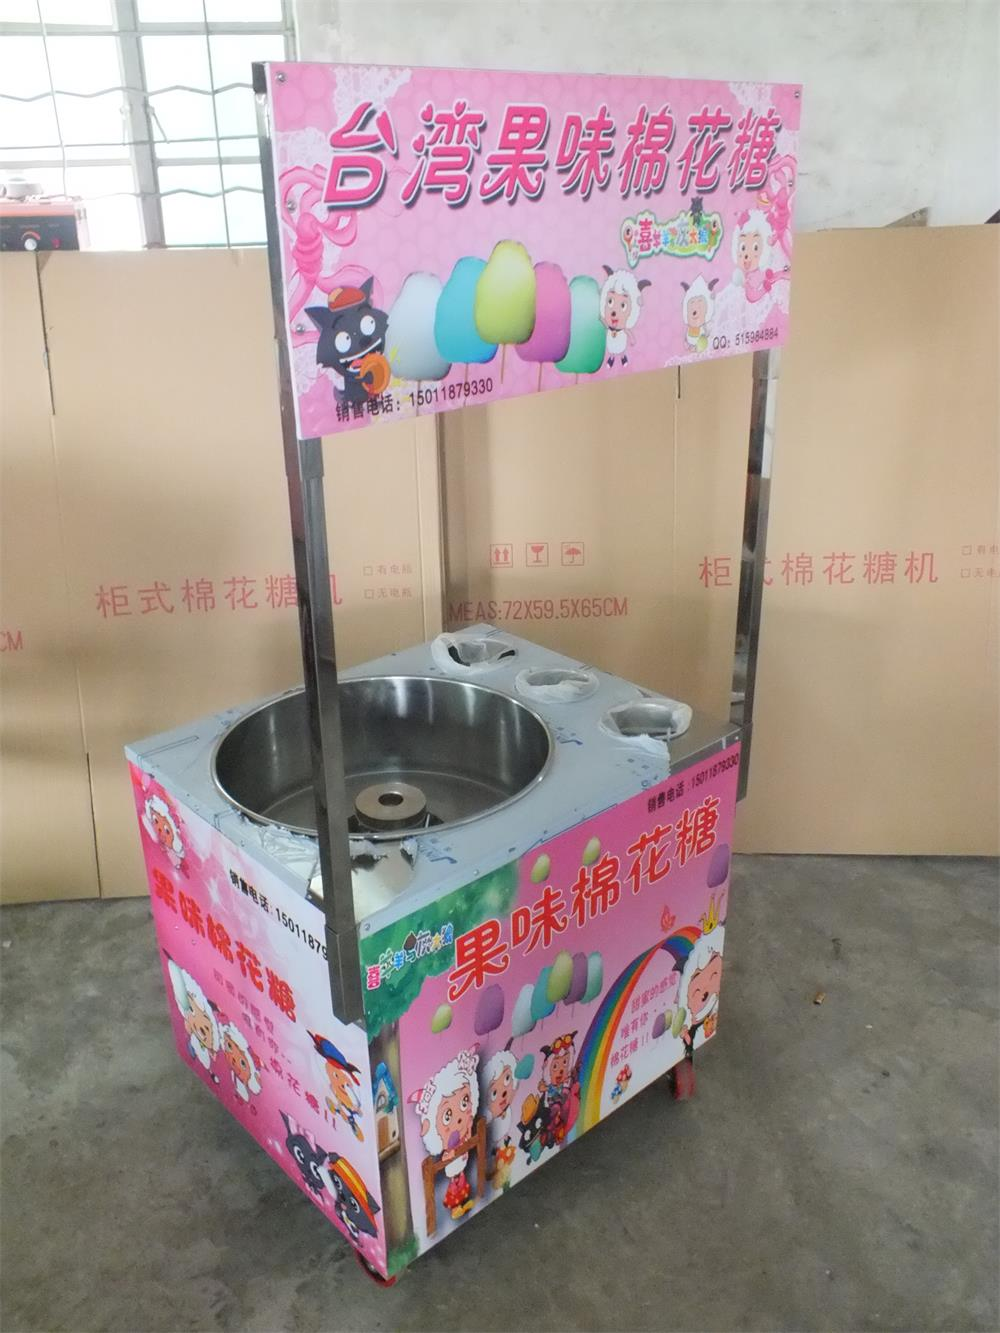 commercial cart cotton candy machine /professional gas cotton candy machine with cart/ce approved cotton candy machine many flavour professional cotton candy machine cotton candy machine price low price cotton candy machine